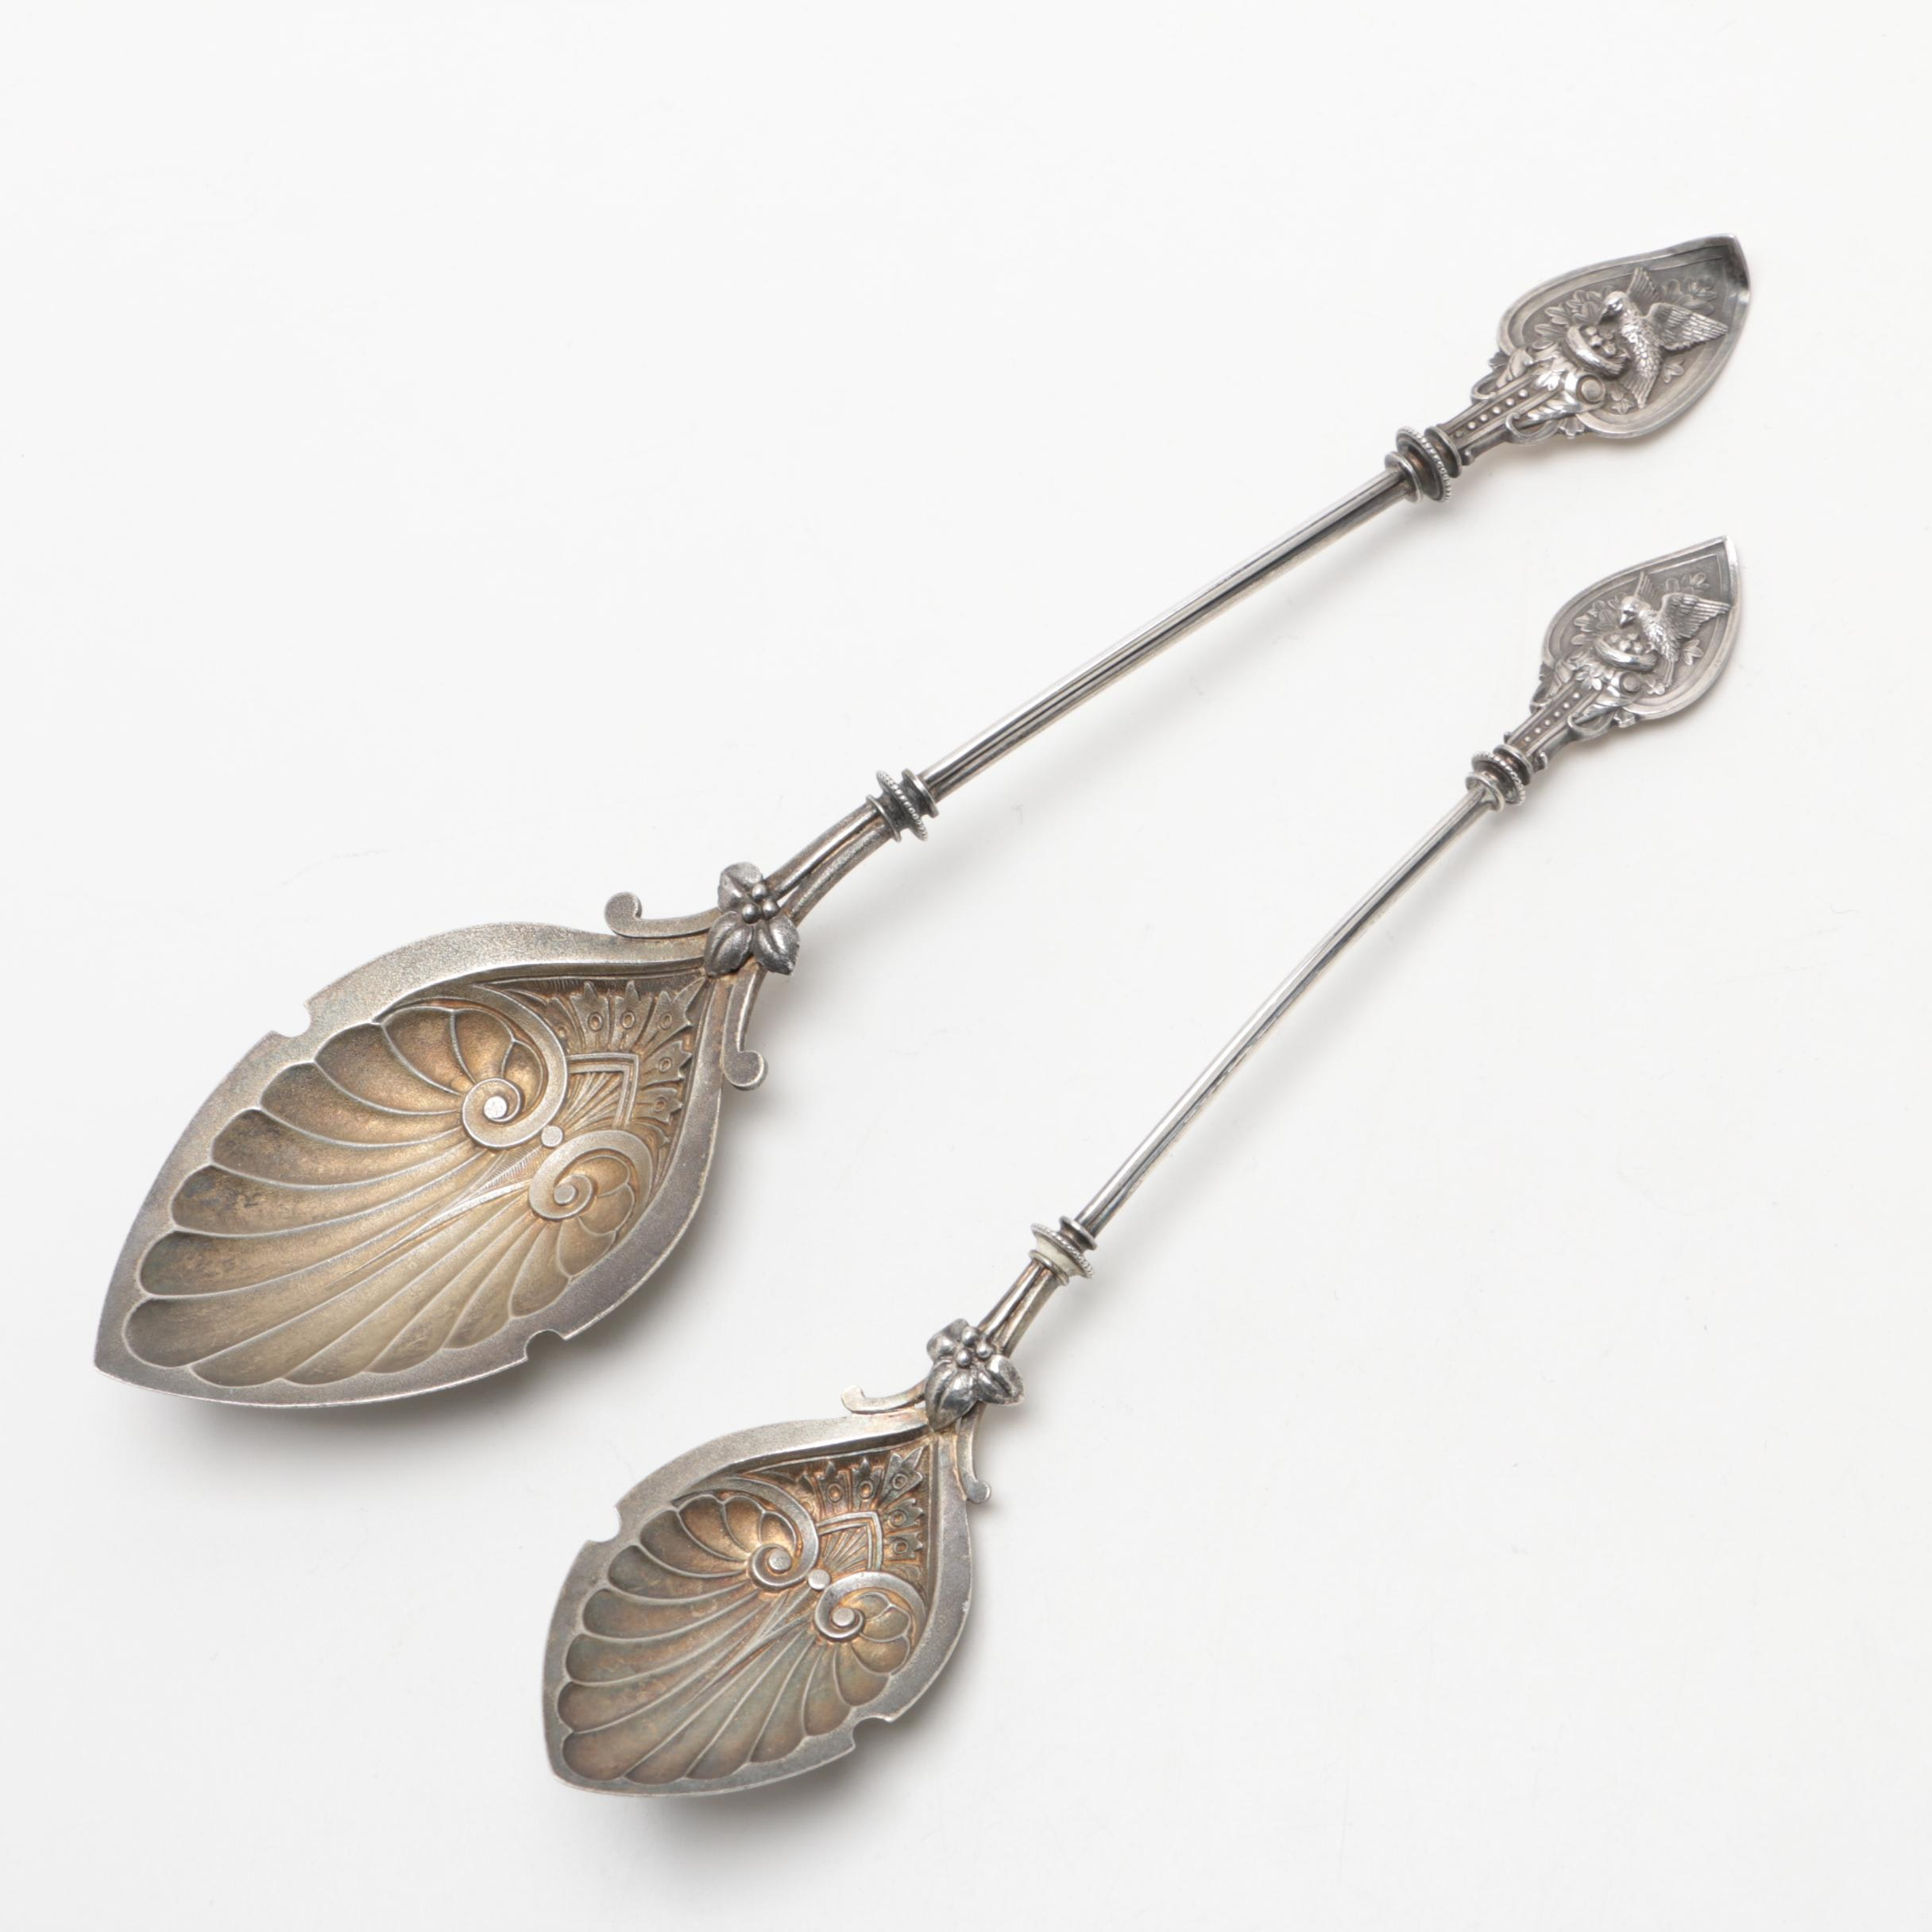 Mid to Late 19th Century Bird and Nest Patterned Sterling Silver Serving Spoons